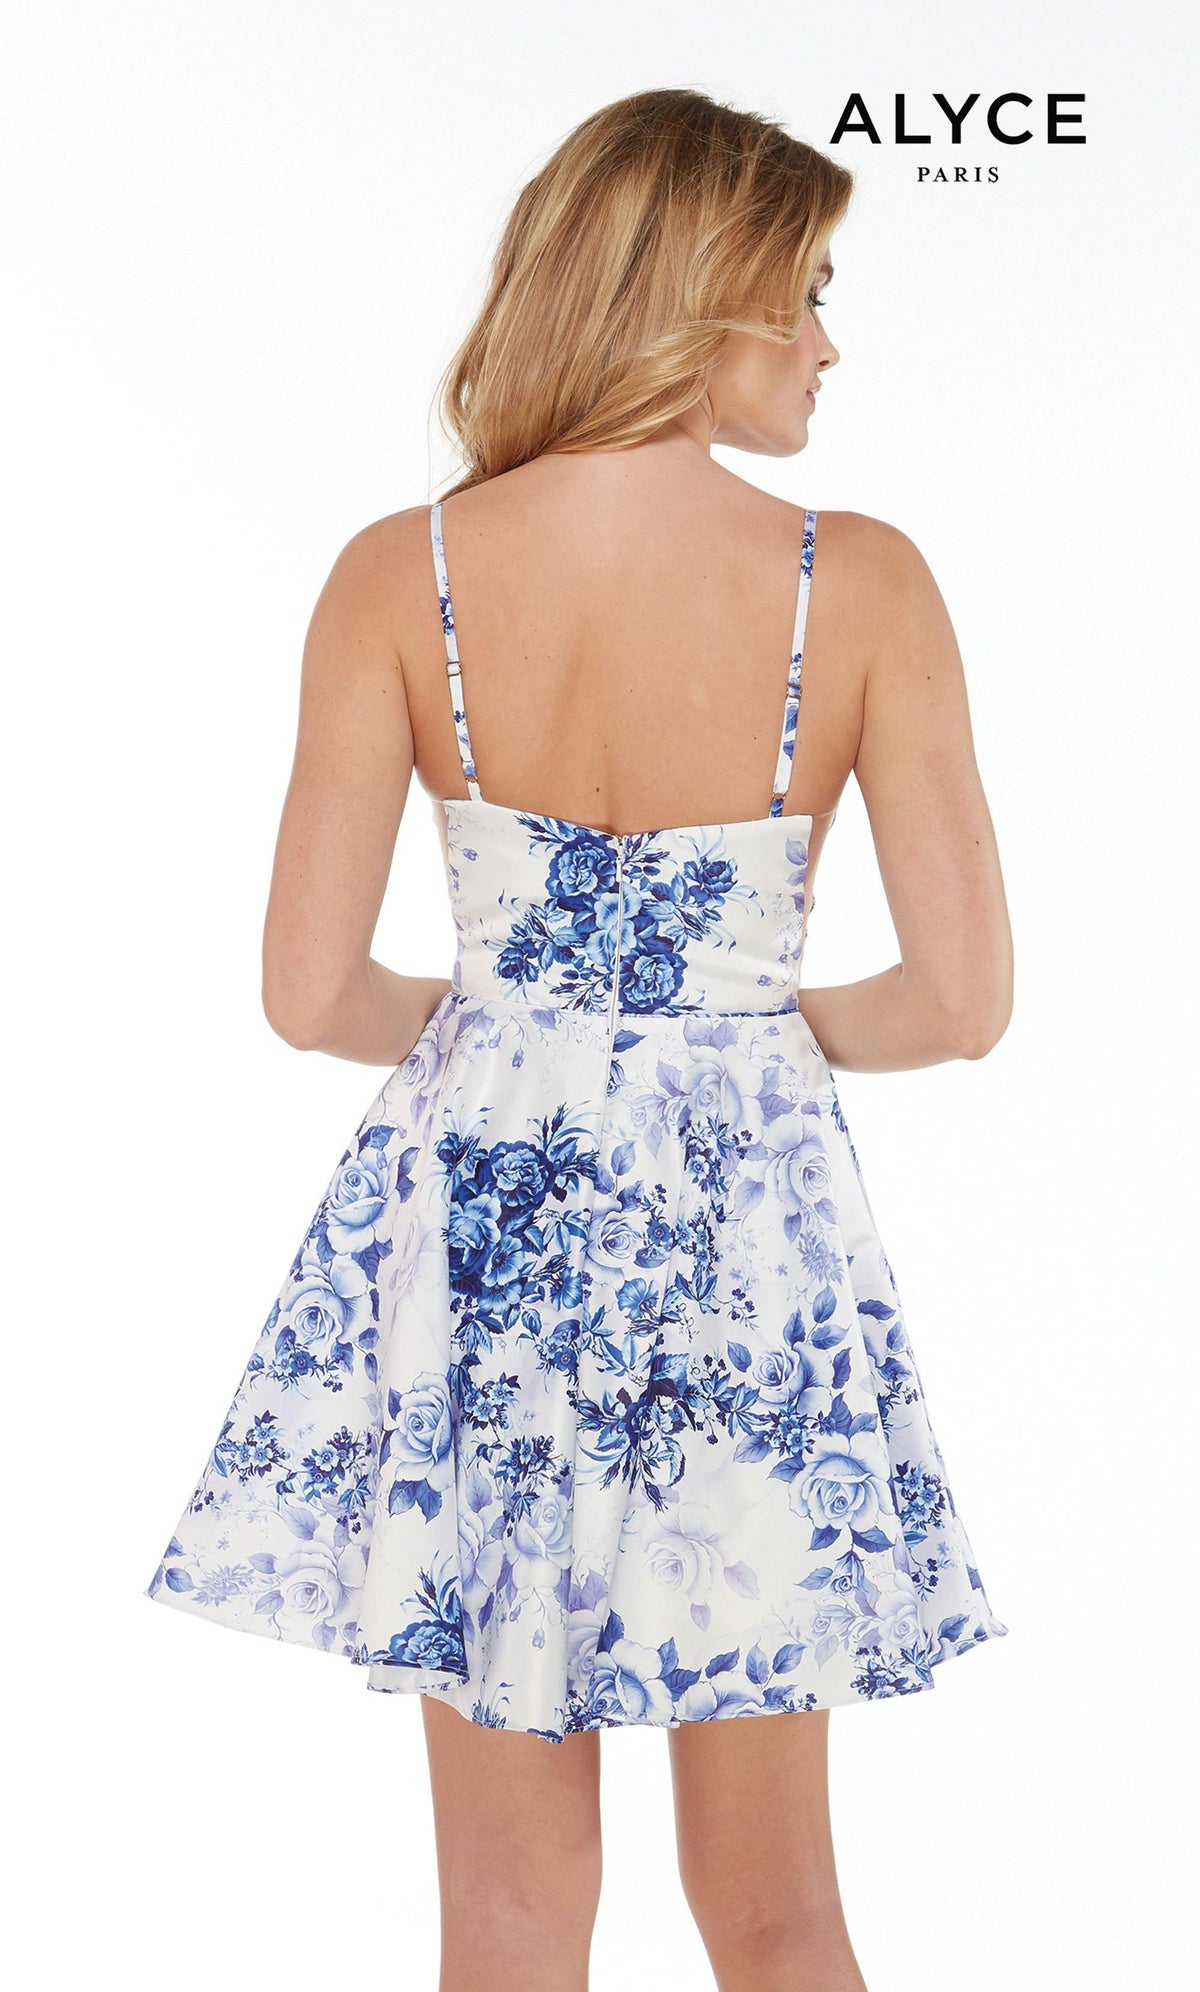 Short White satin semi formal dress for juniors with Royal Blue floral print and an enclosed back